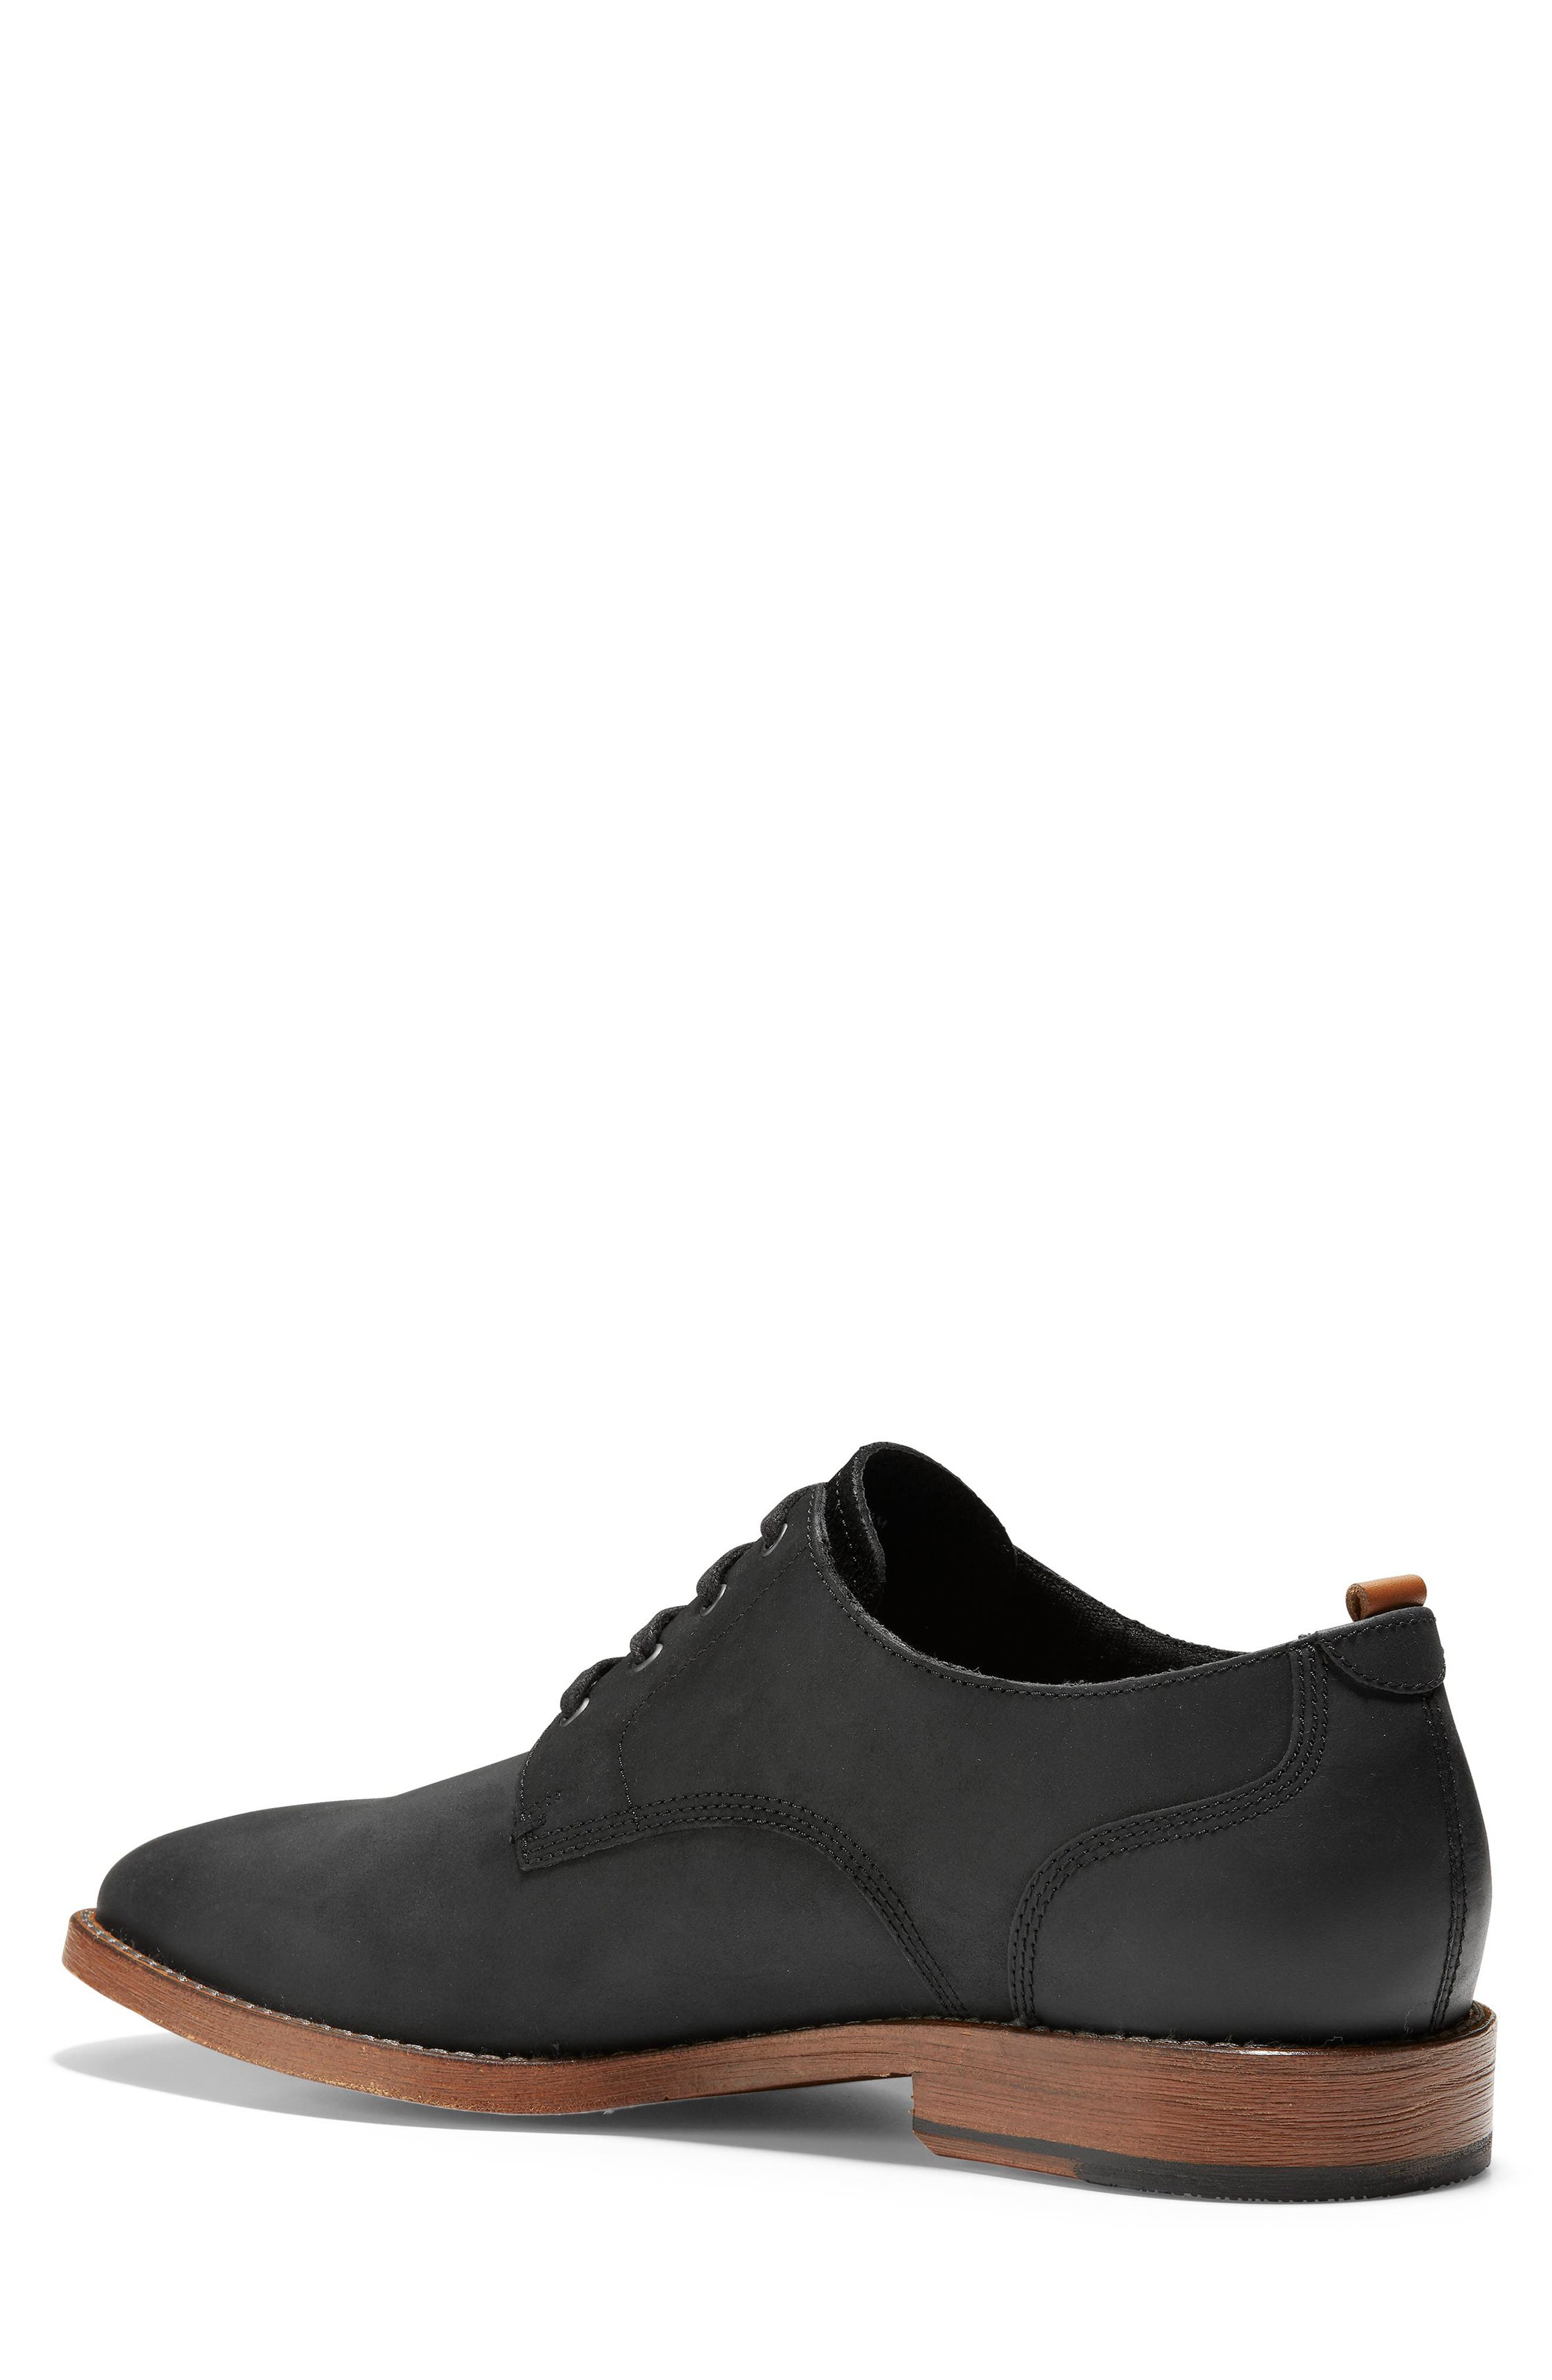 COLE HAAN, Feathercraft Grand Derby, Alternate thumbnail 2, color, BLACK LEATHER